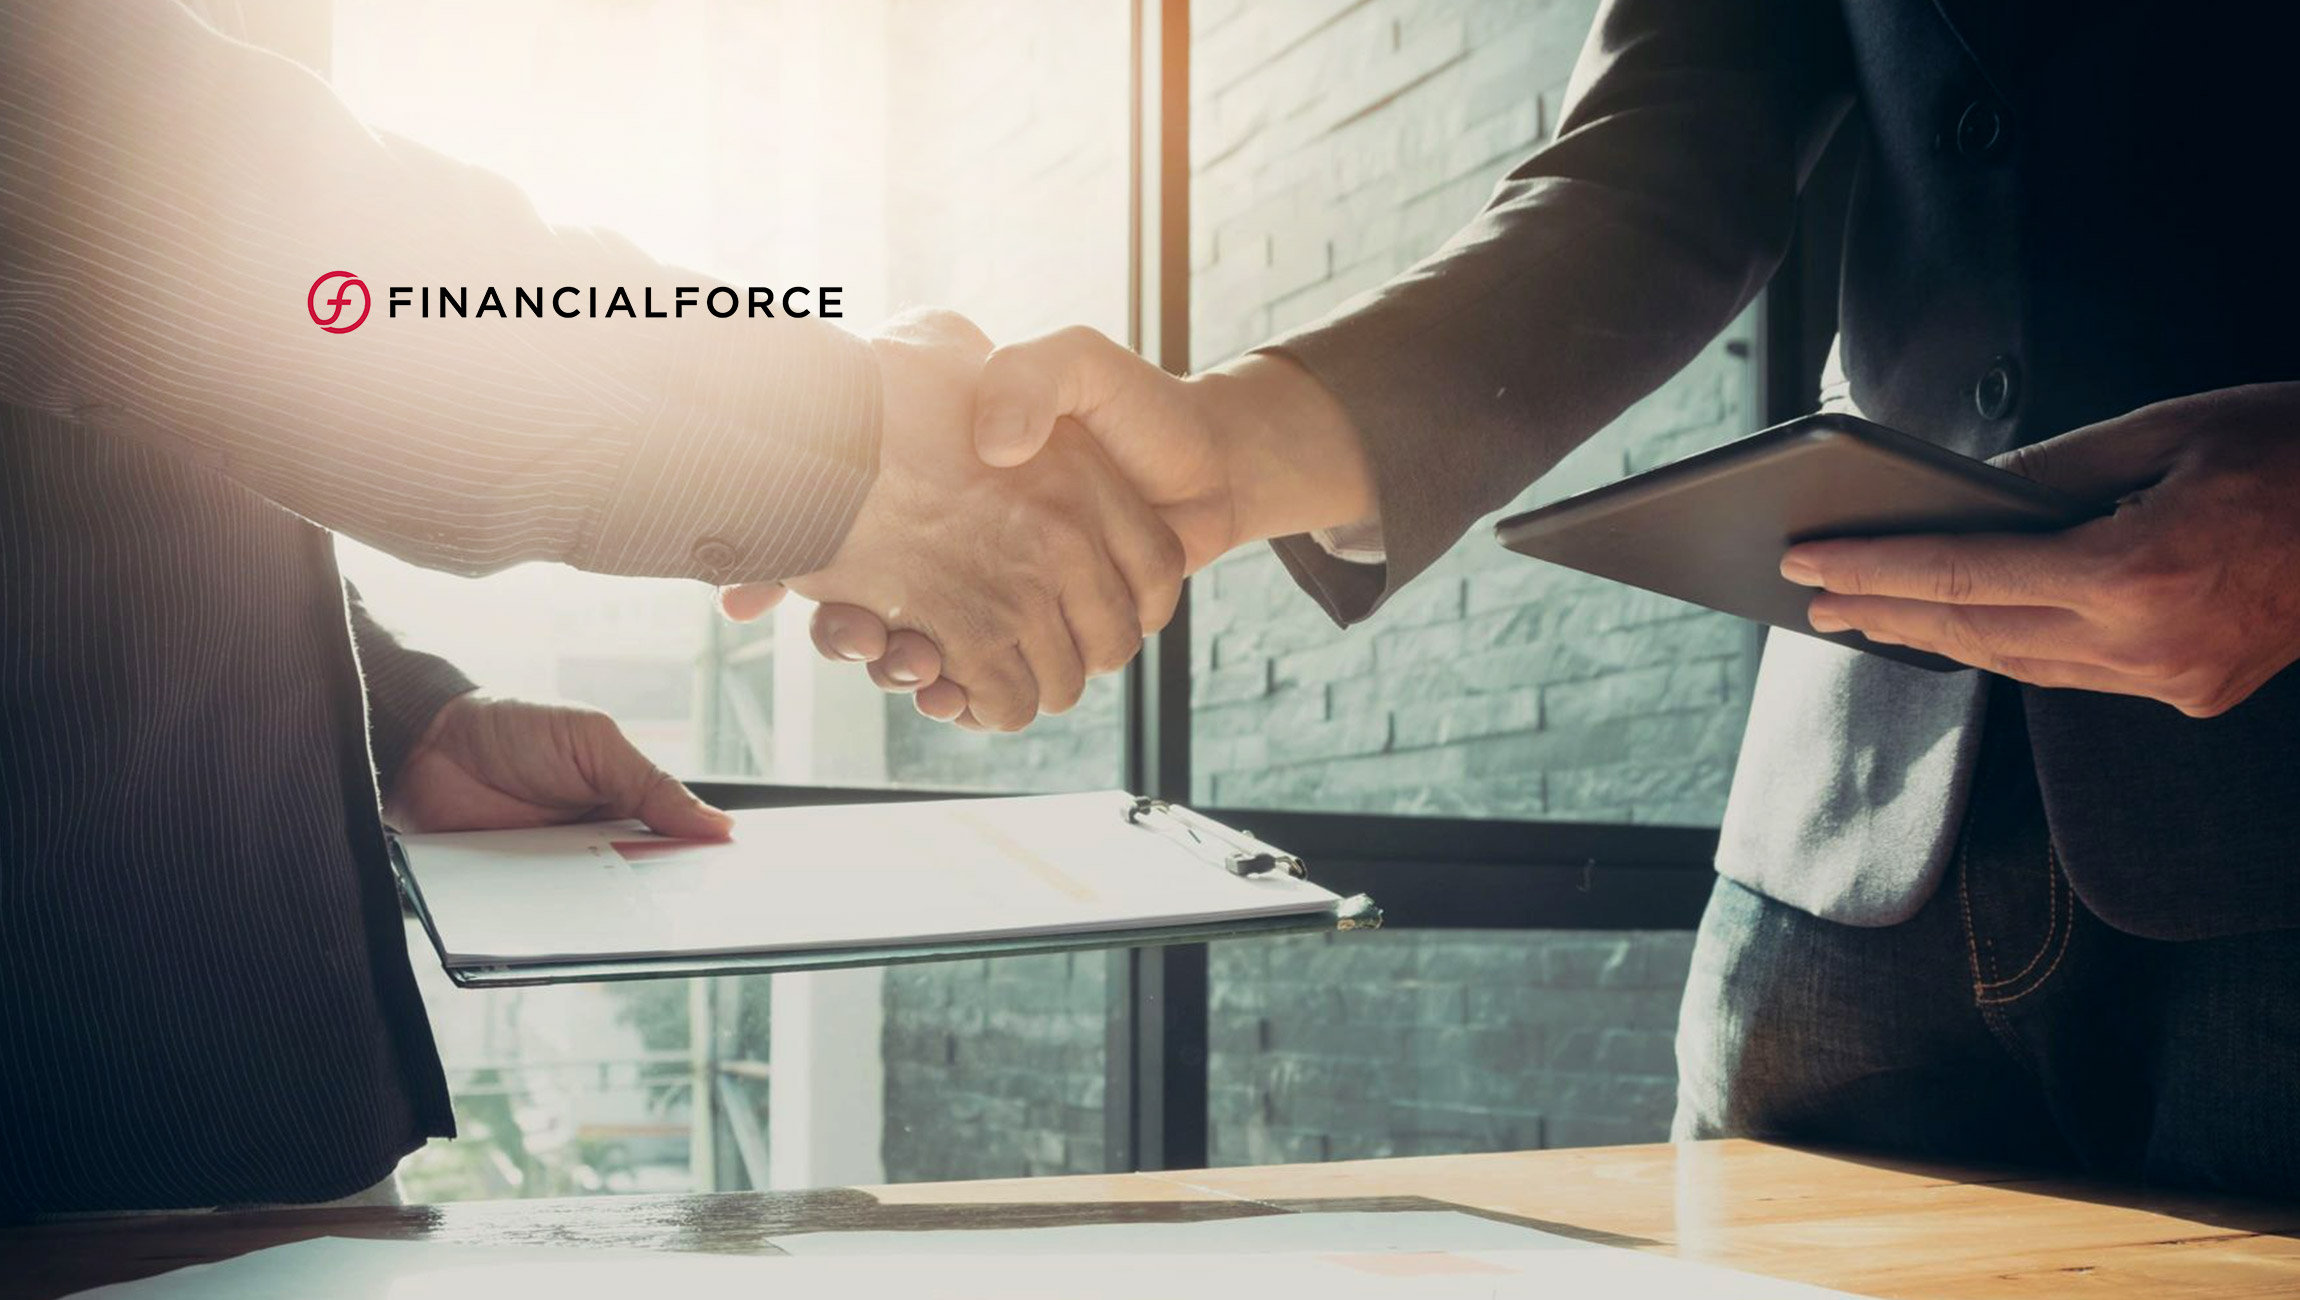 FinancialForce Launches New Customer Digital Experience That Promotes Collaboration and Transparency